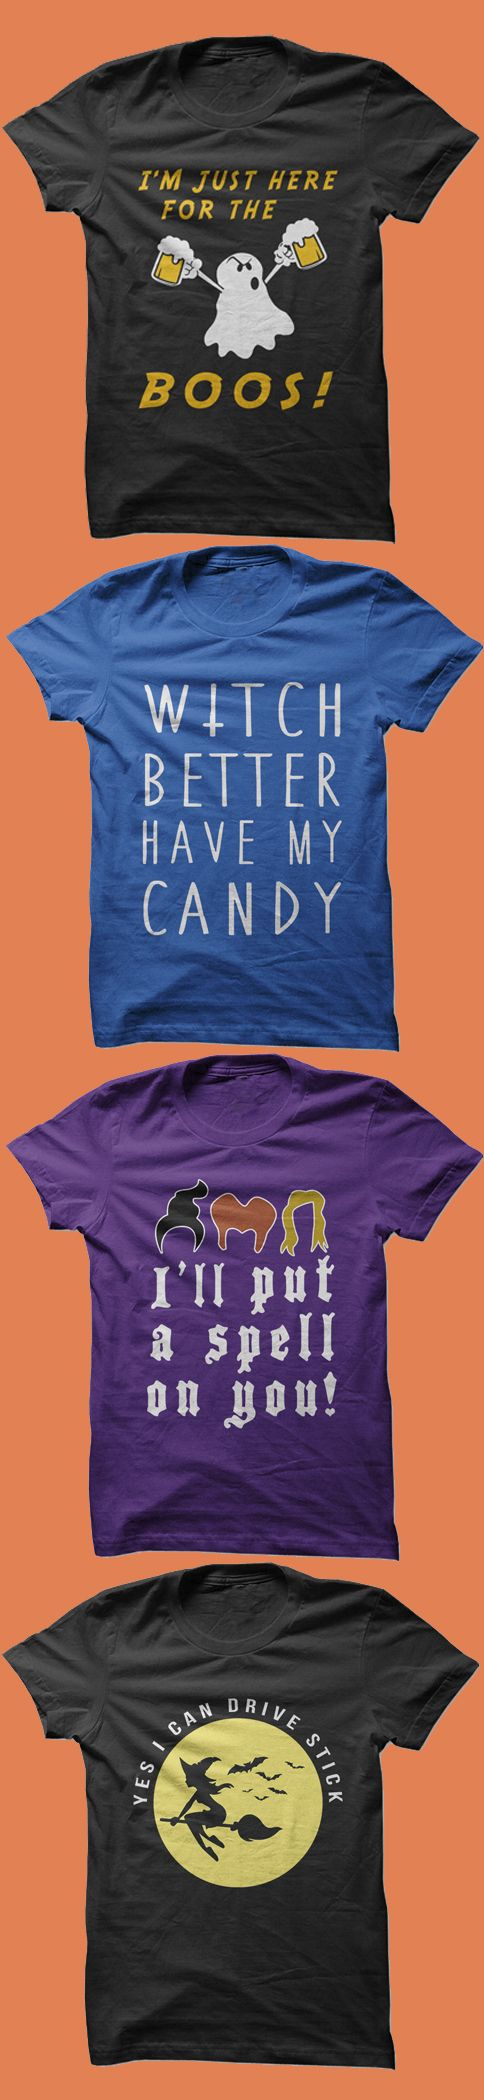 The funniest Halloween party shirts all in one place. Click to see ...